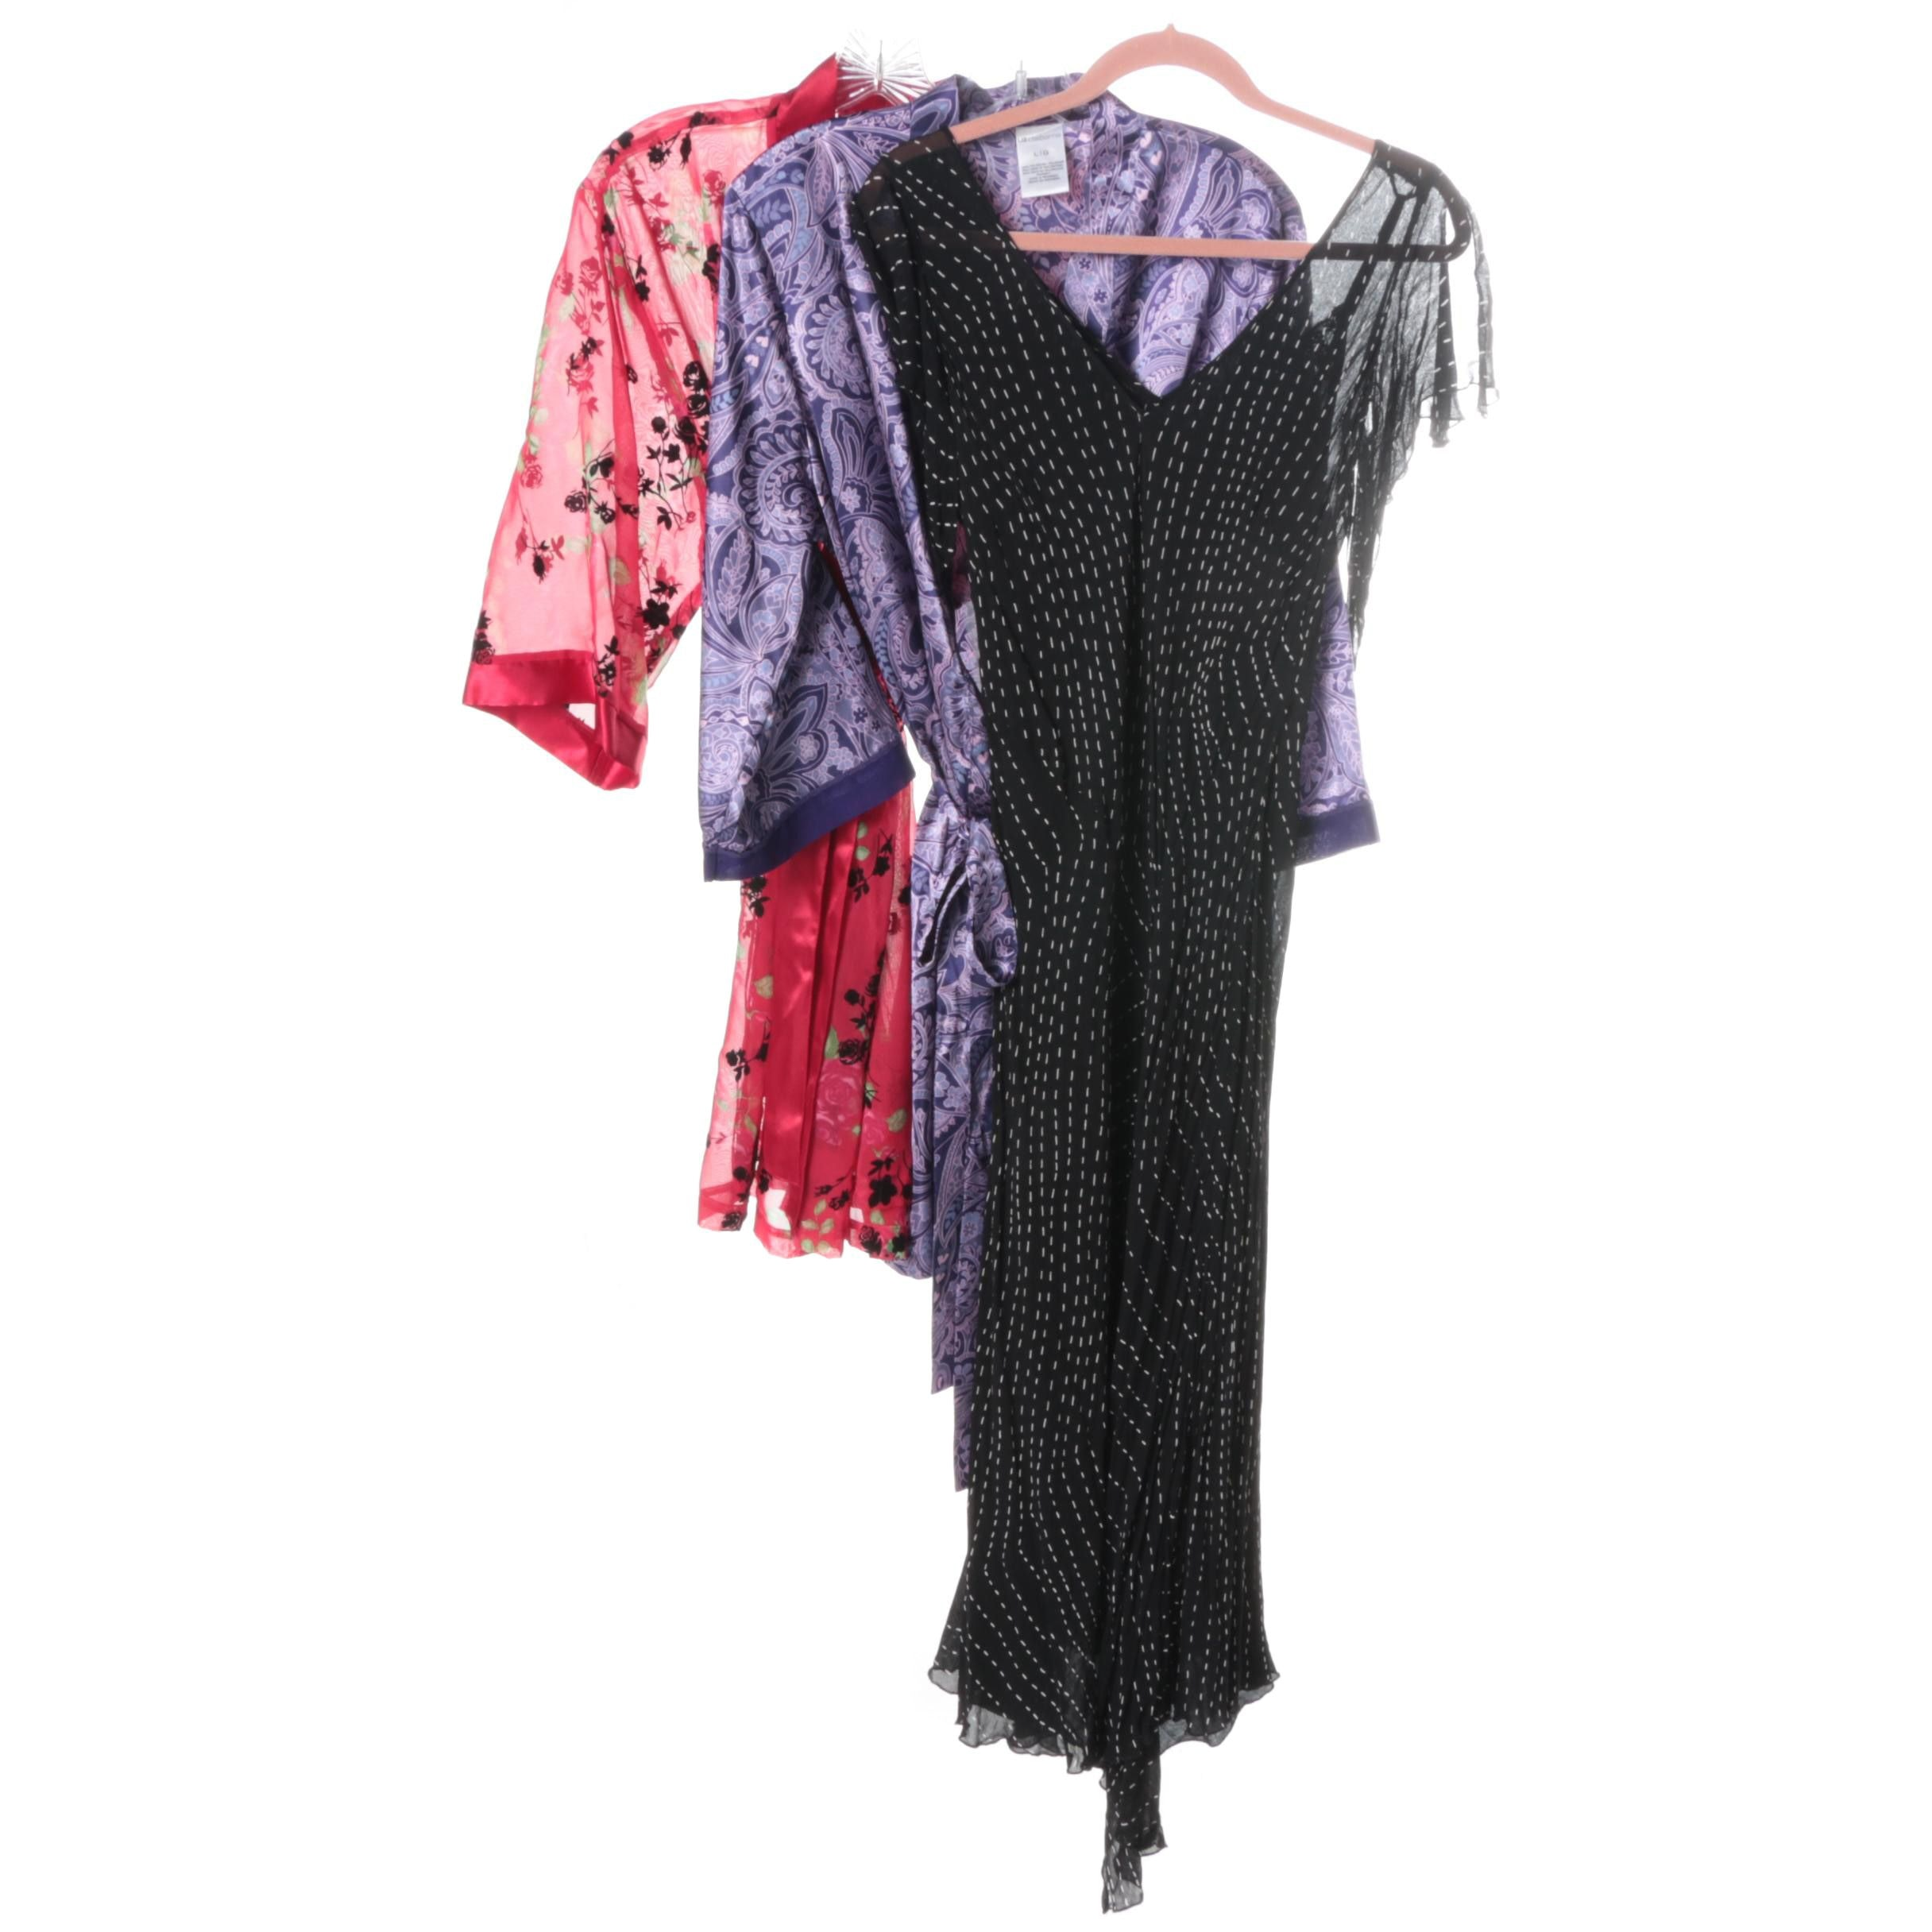 Women's Robes and Dress Including Liz Claiborne